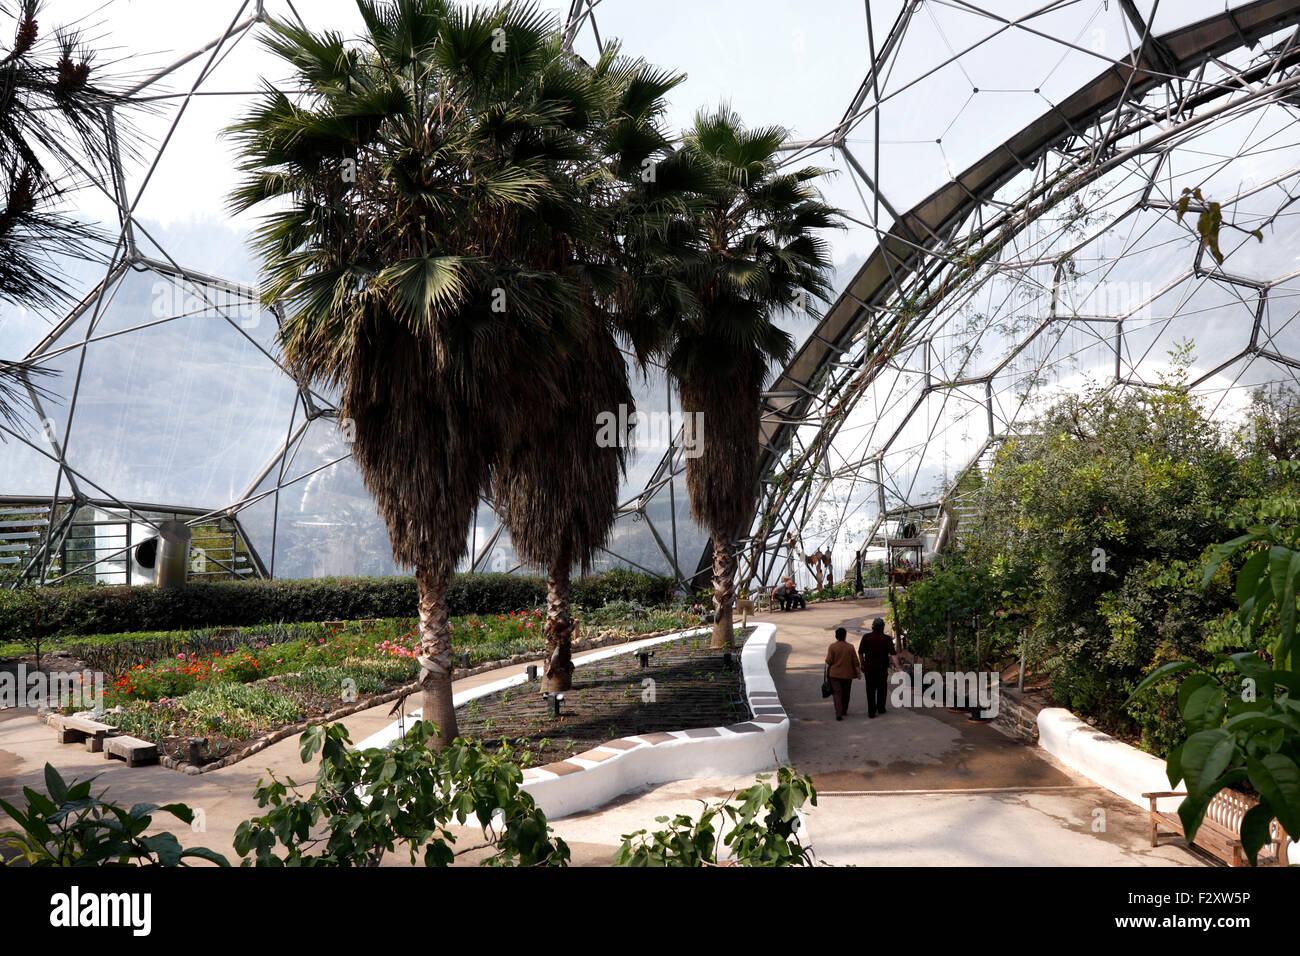 THE MEDITERRANEAN BIOME AT THE EDEN PROJECT. BODELVA CORNWALL UK. - Stock Image